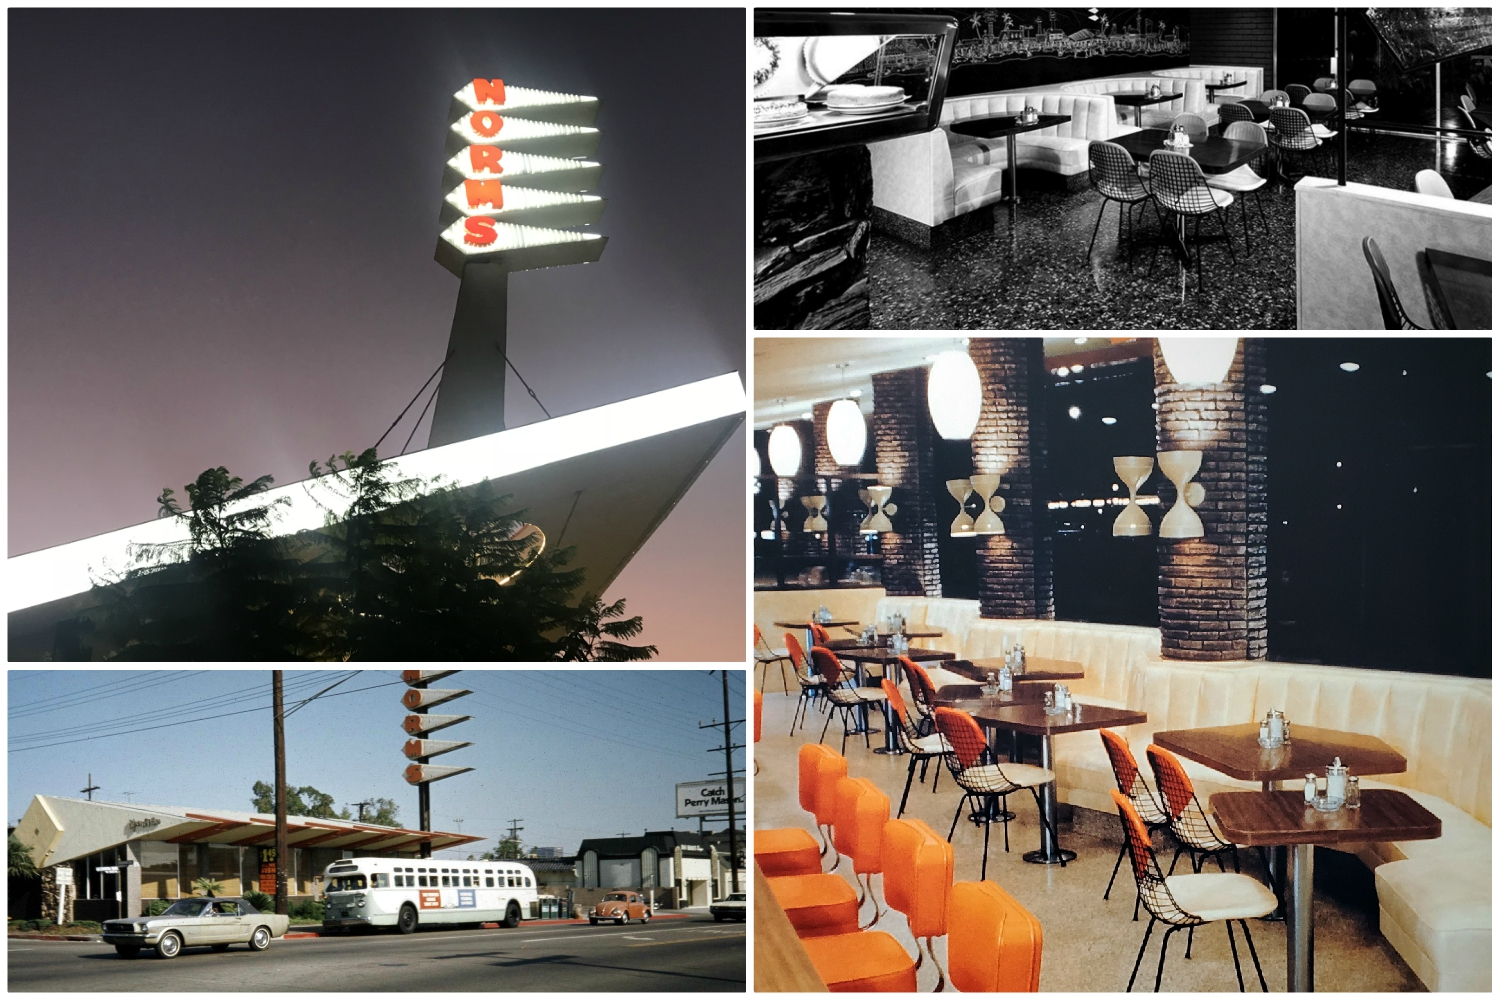 After 70 Years, the Norms Chain of Iconic Googie Diners Looks to the Future